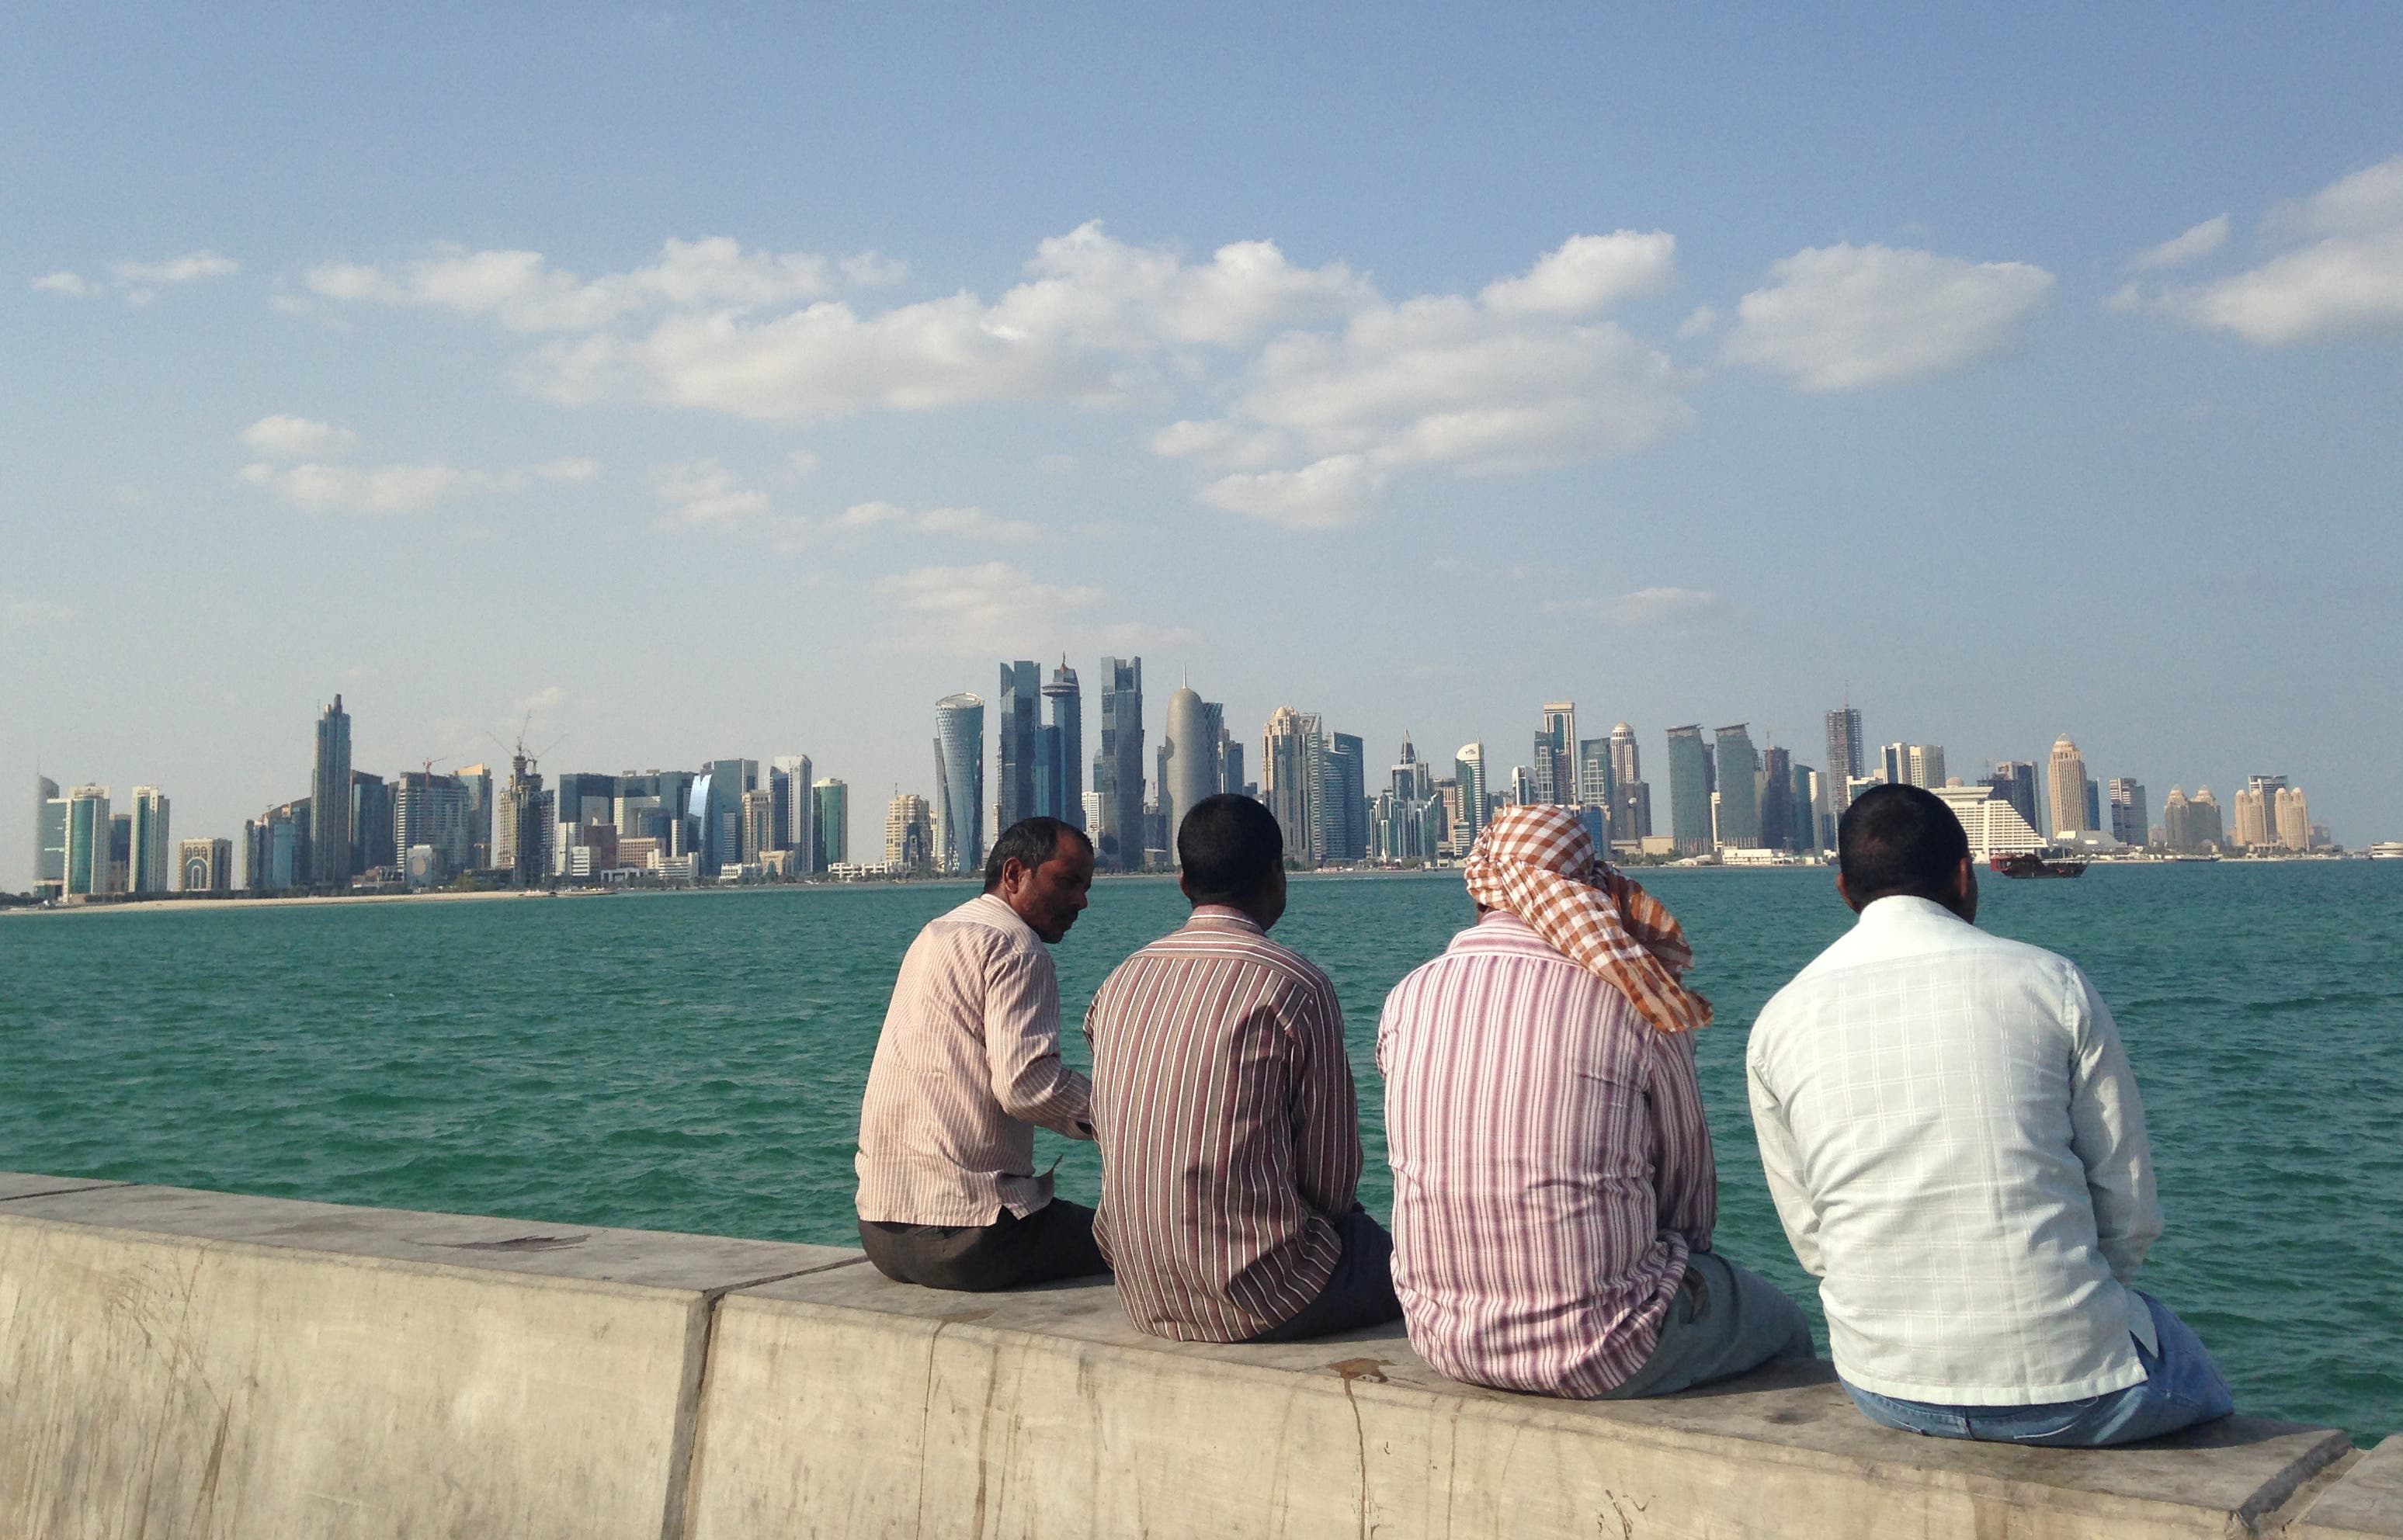 FILE - In this Nov. 7, 2014, file photo, men talk by the sea overlooking the Qatar skyline in Doha, Qatar. Amnesty International said Thursday, May 21, 2015, that Qatar is failing to deliver on reforms for its low-paid migrant workers a year after the wealthy Gulf nation announced plans to improve conditions for laborers building its highways, hotels, stadiums and skyscrapers. (AP Photo/Rob Harris, File)